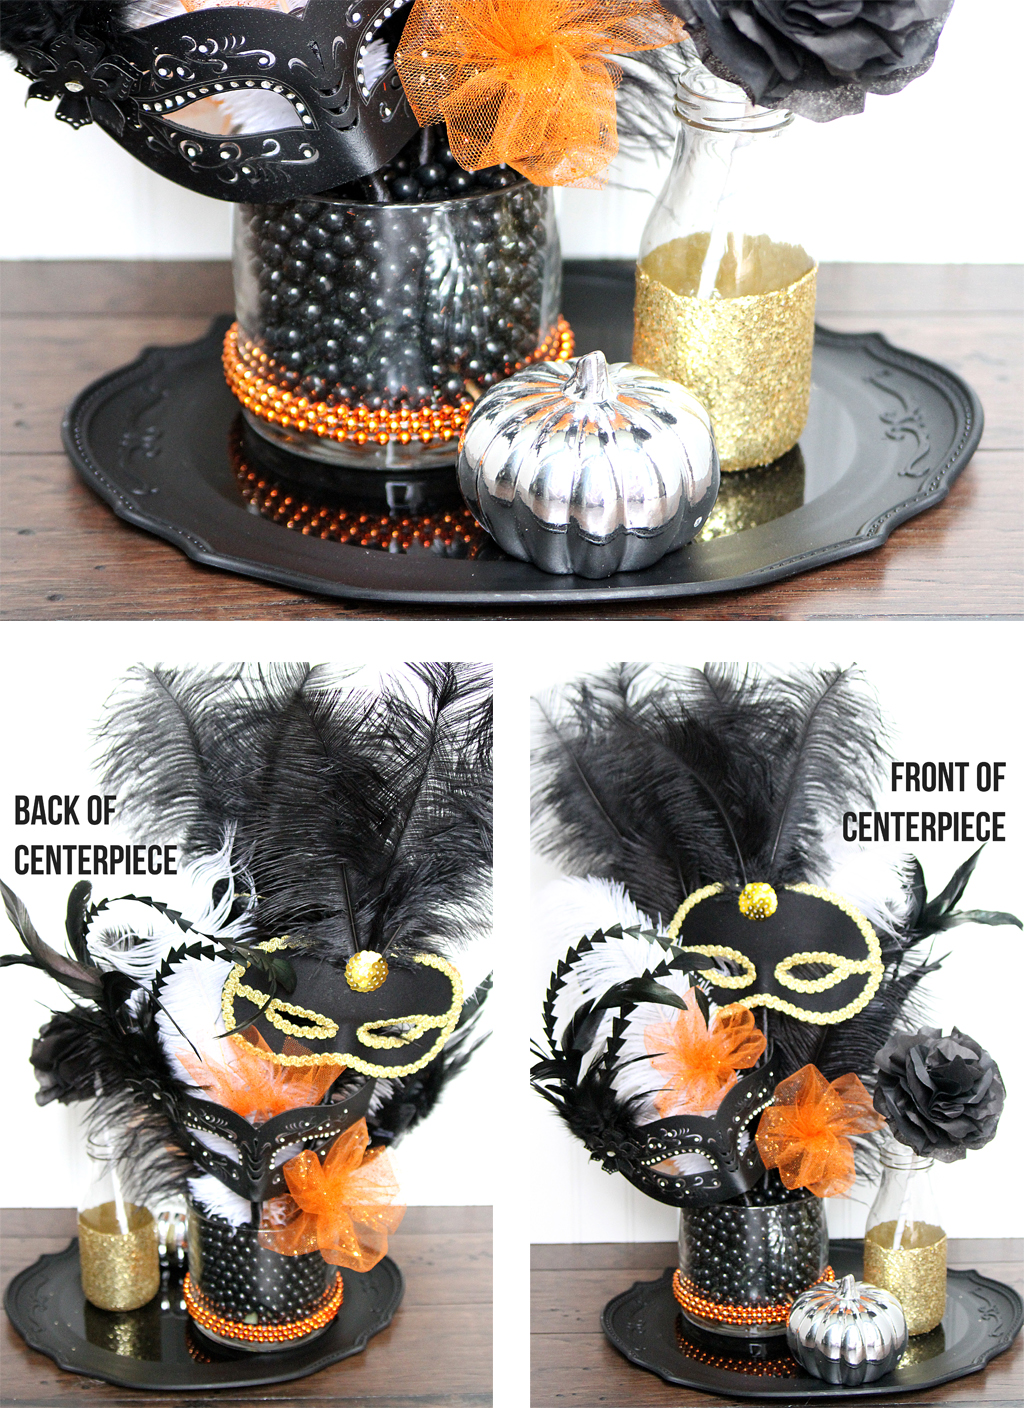 Diy masquerade party centerpiece ideas